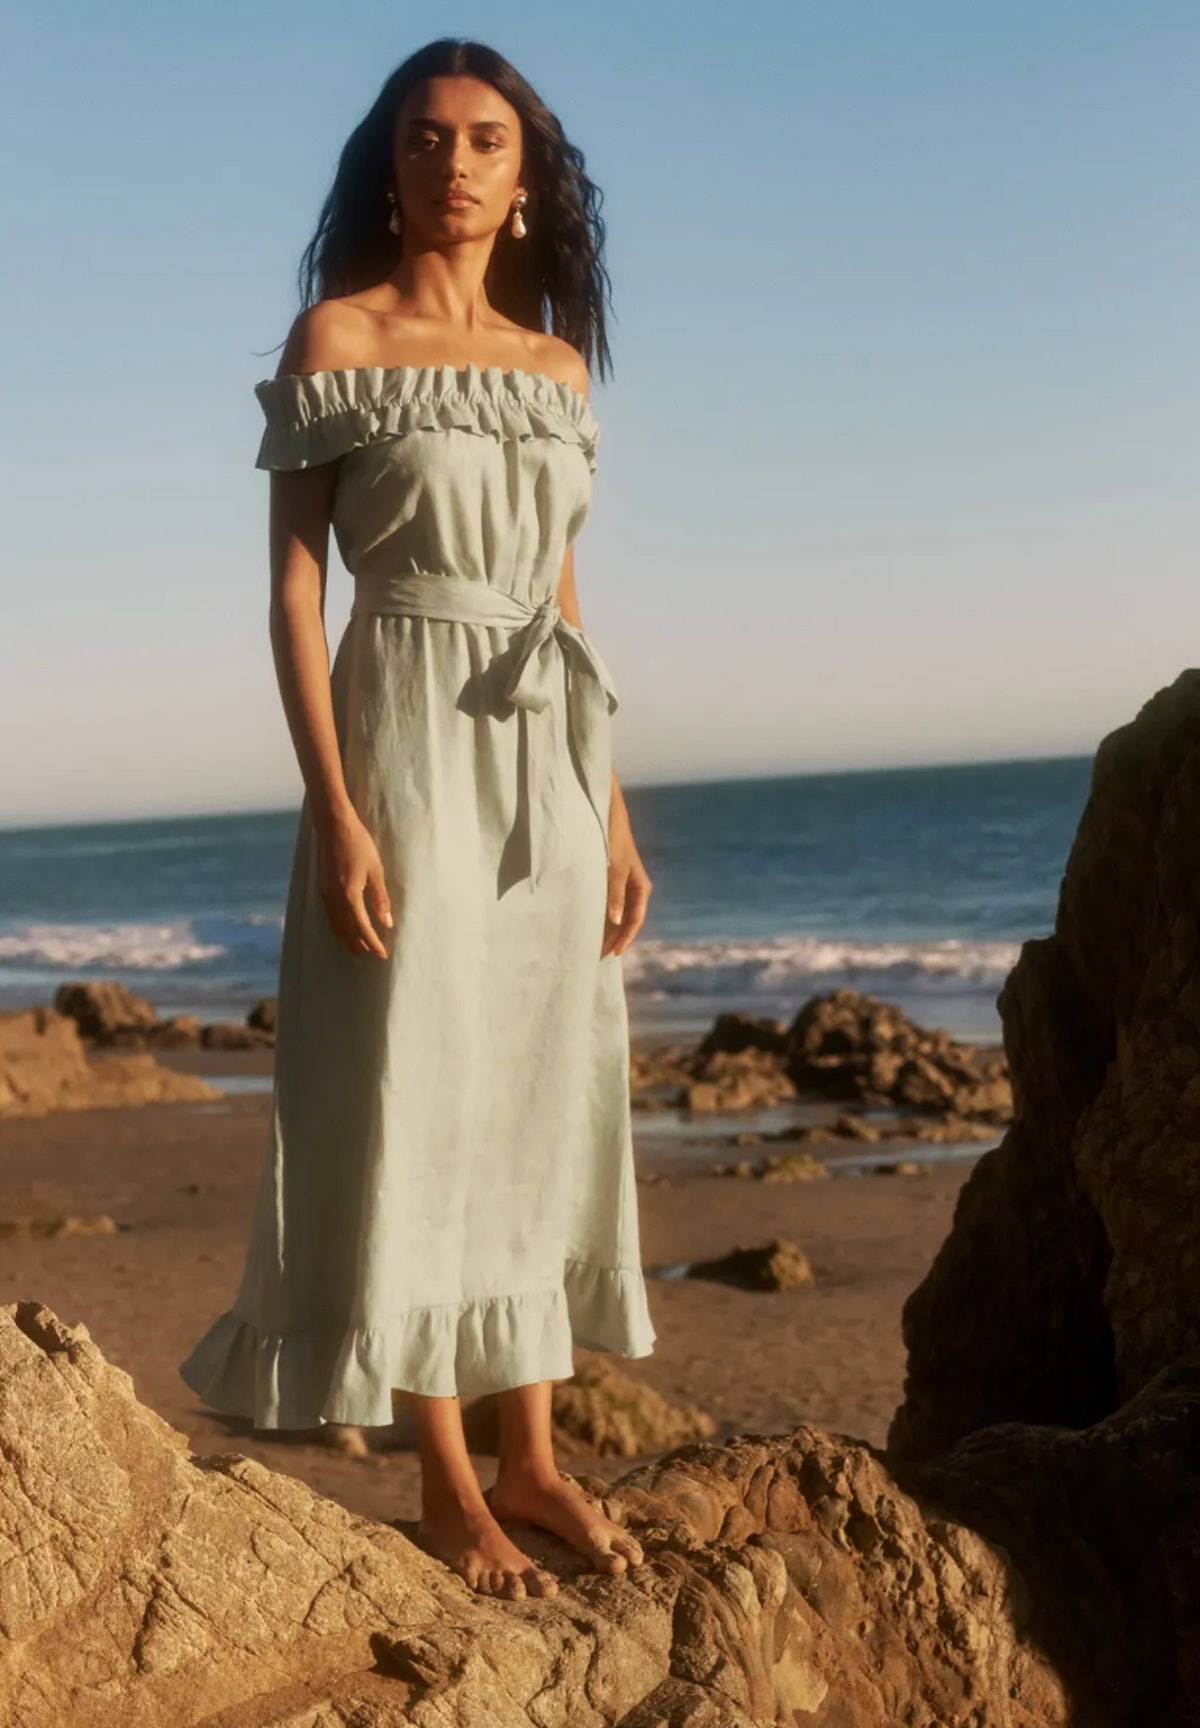 Reformation's Sycamore dress in the style dried herbs.